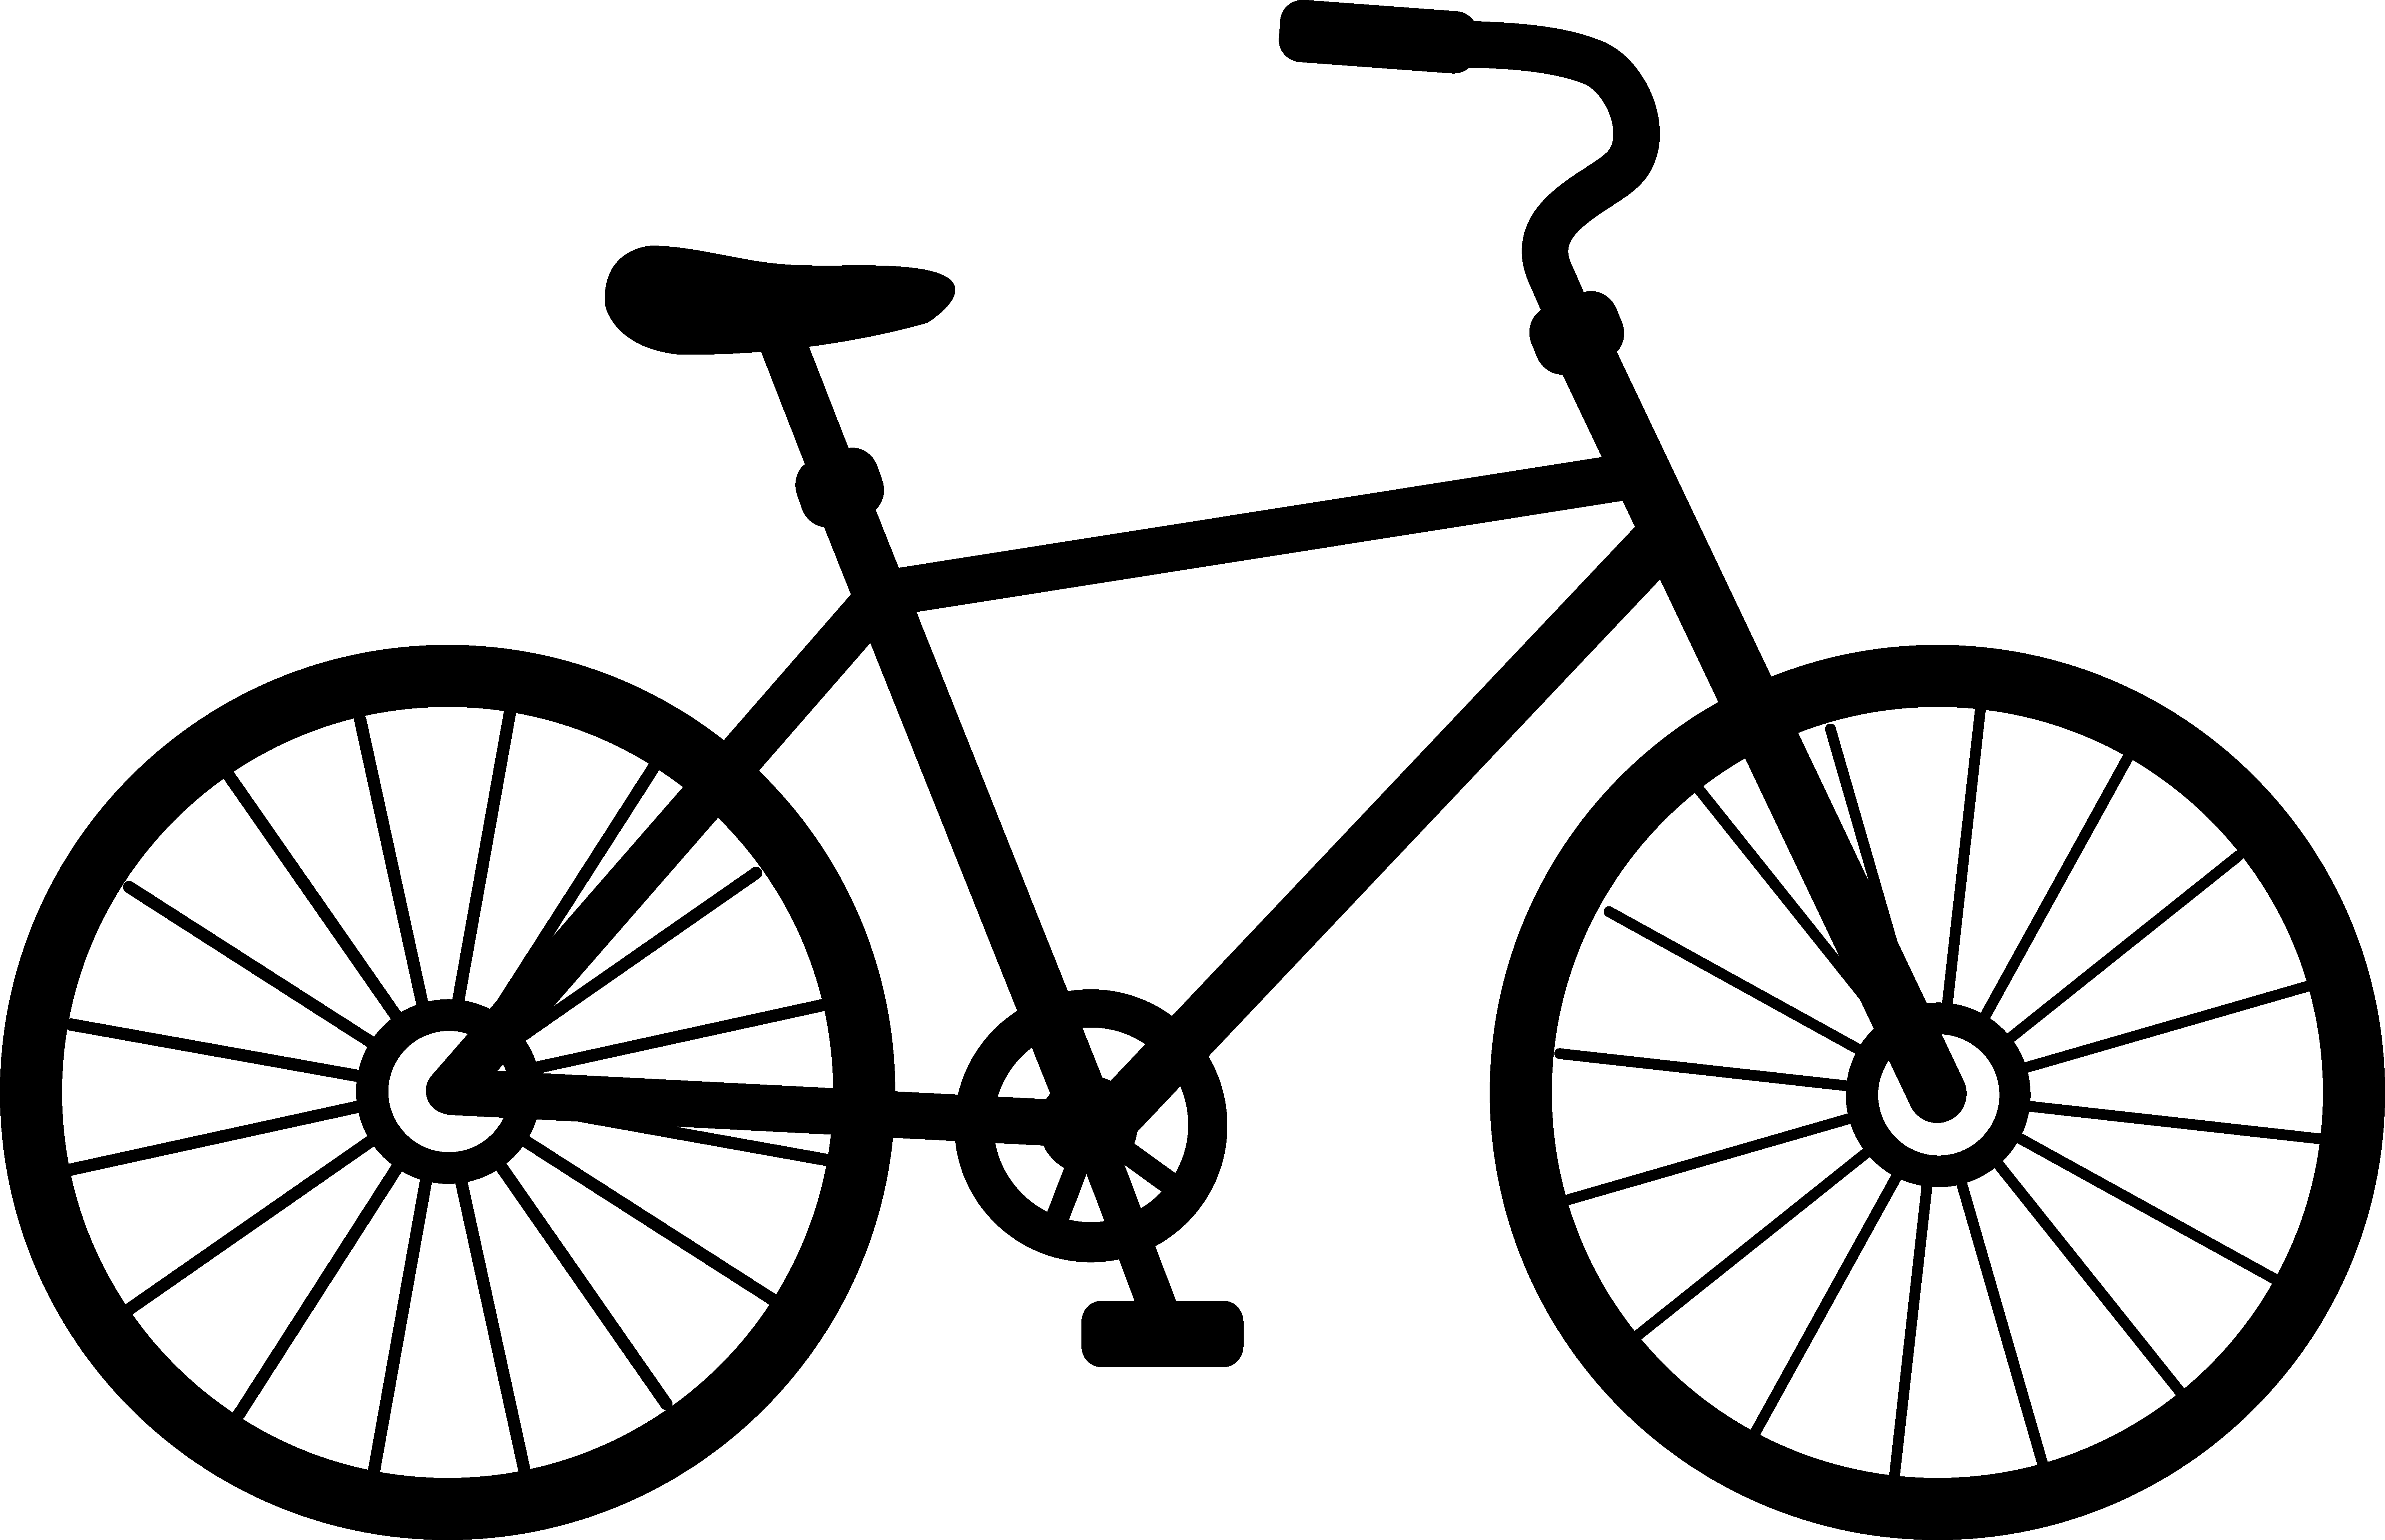 Biking drawing clip art. Collection of free cycled